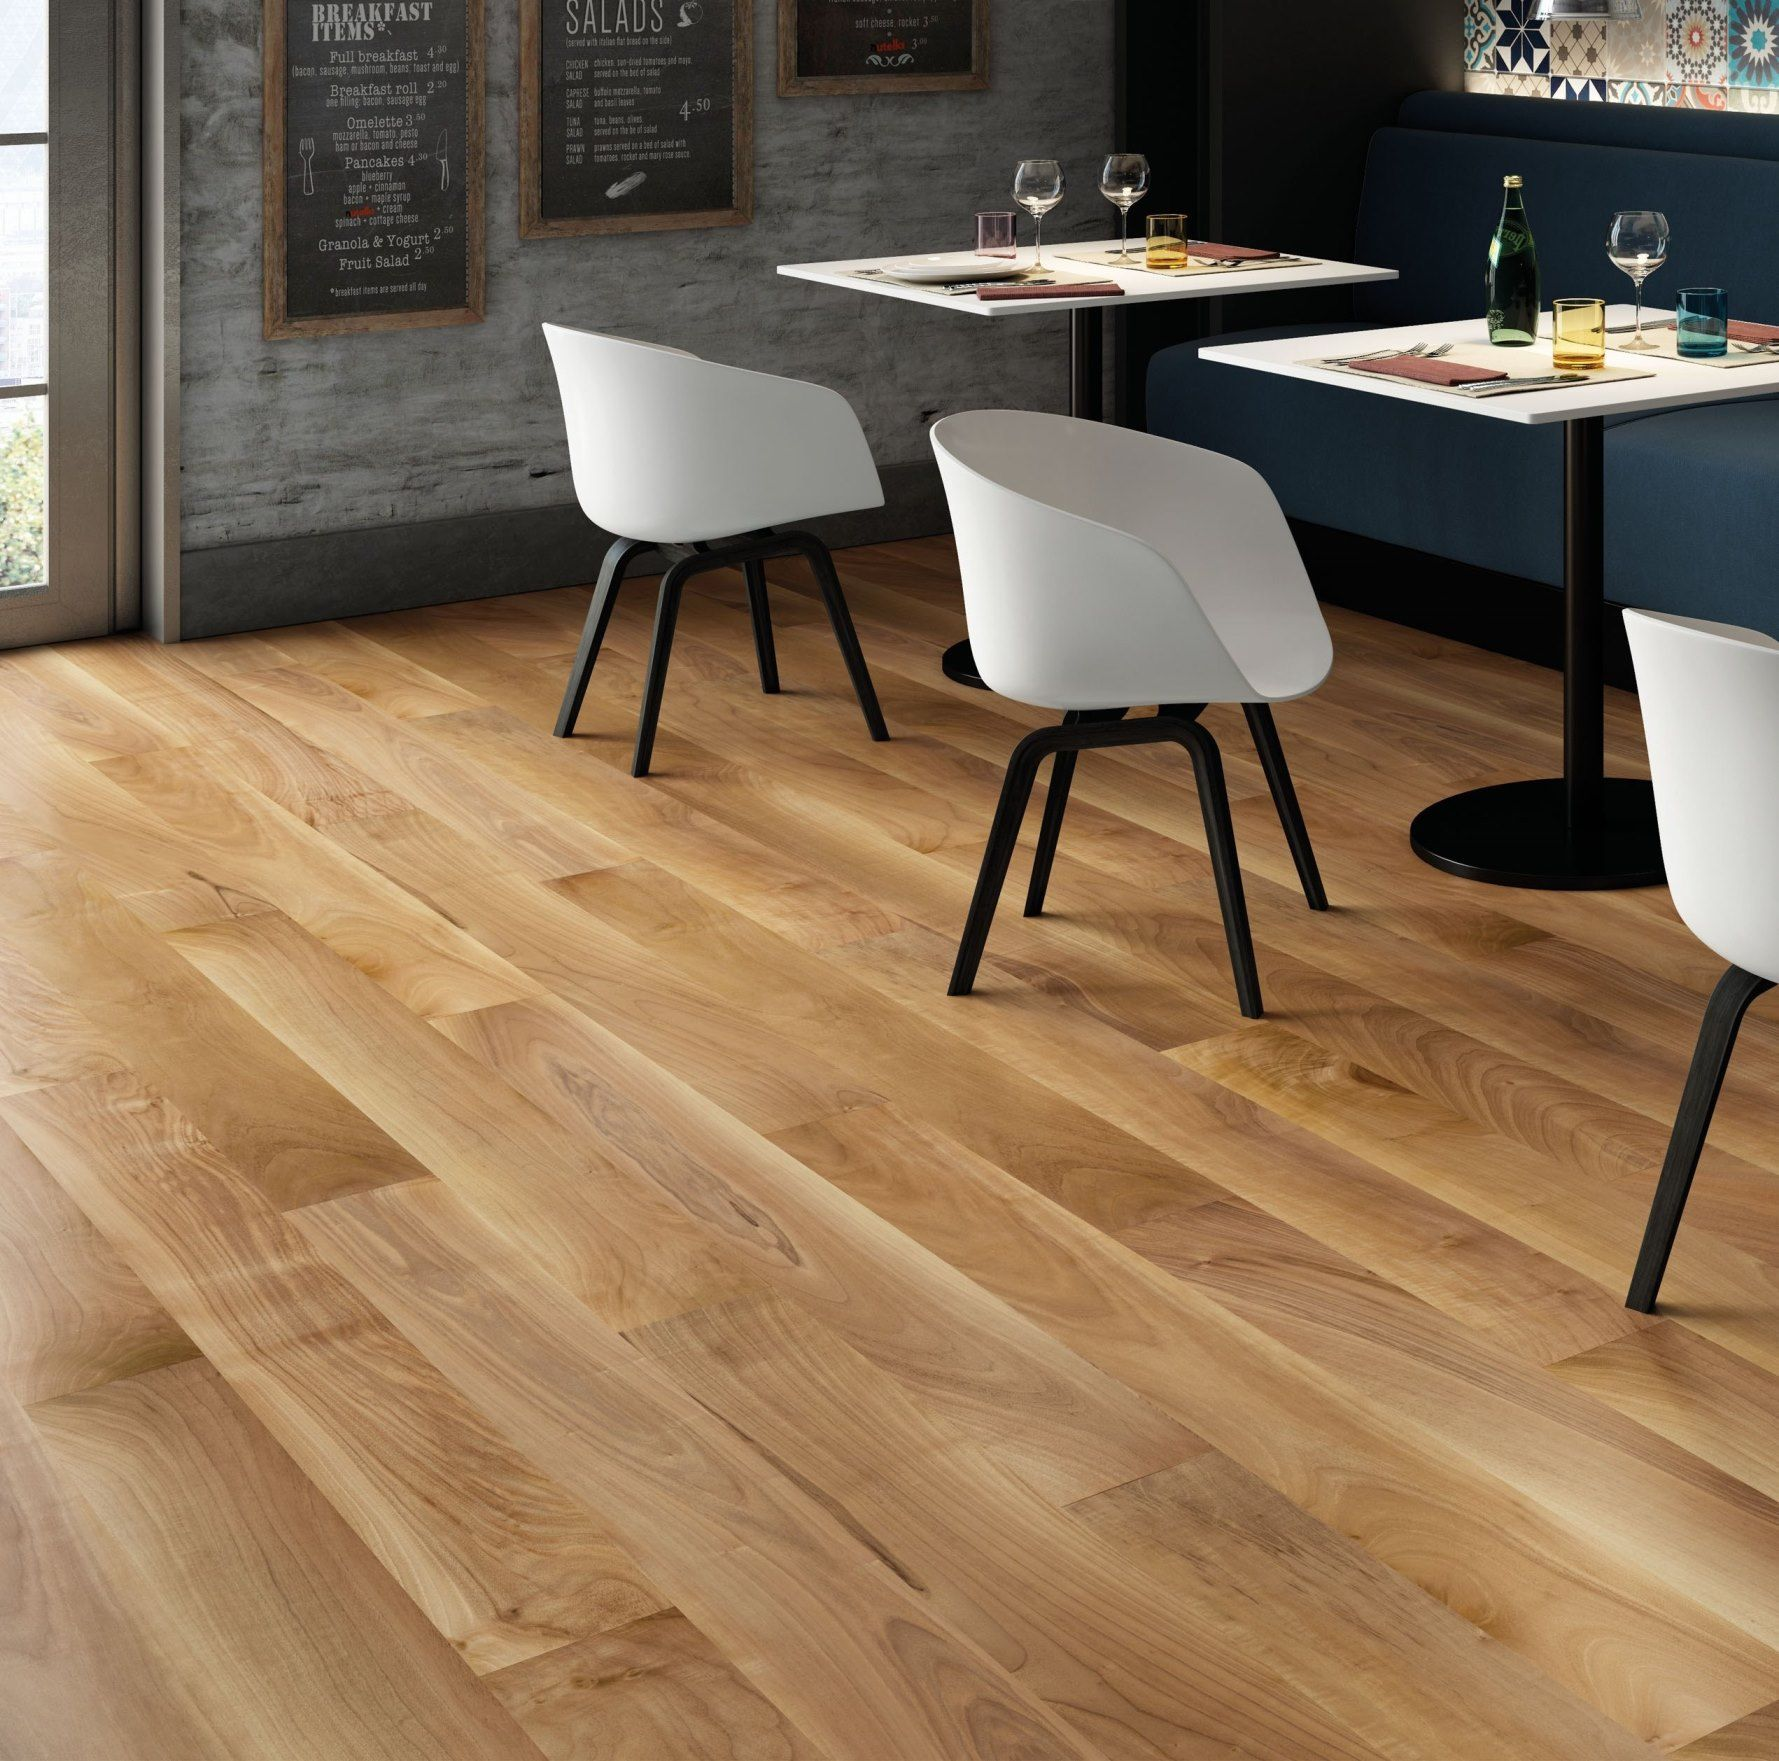 Parquet Noce Vision, Dream 160 collection by Woodco wood